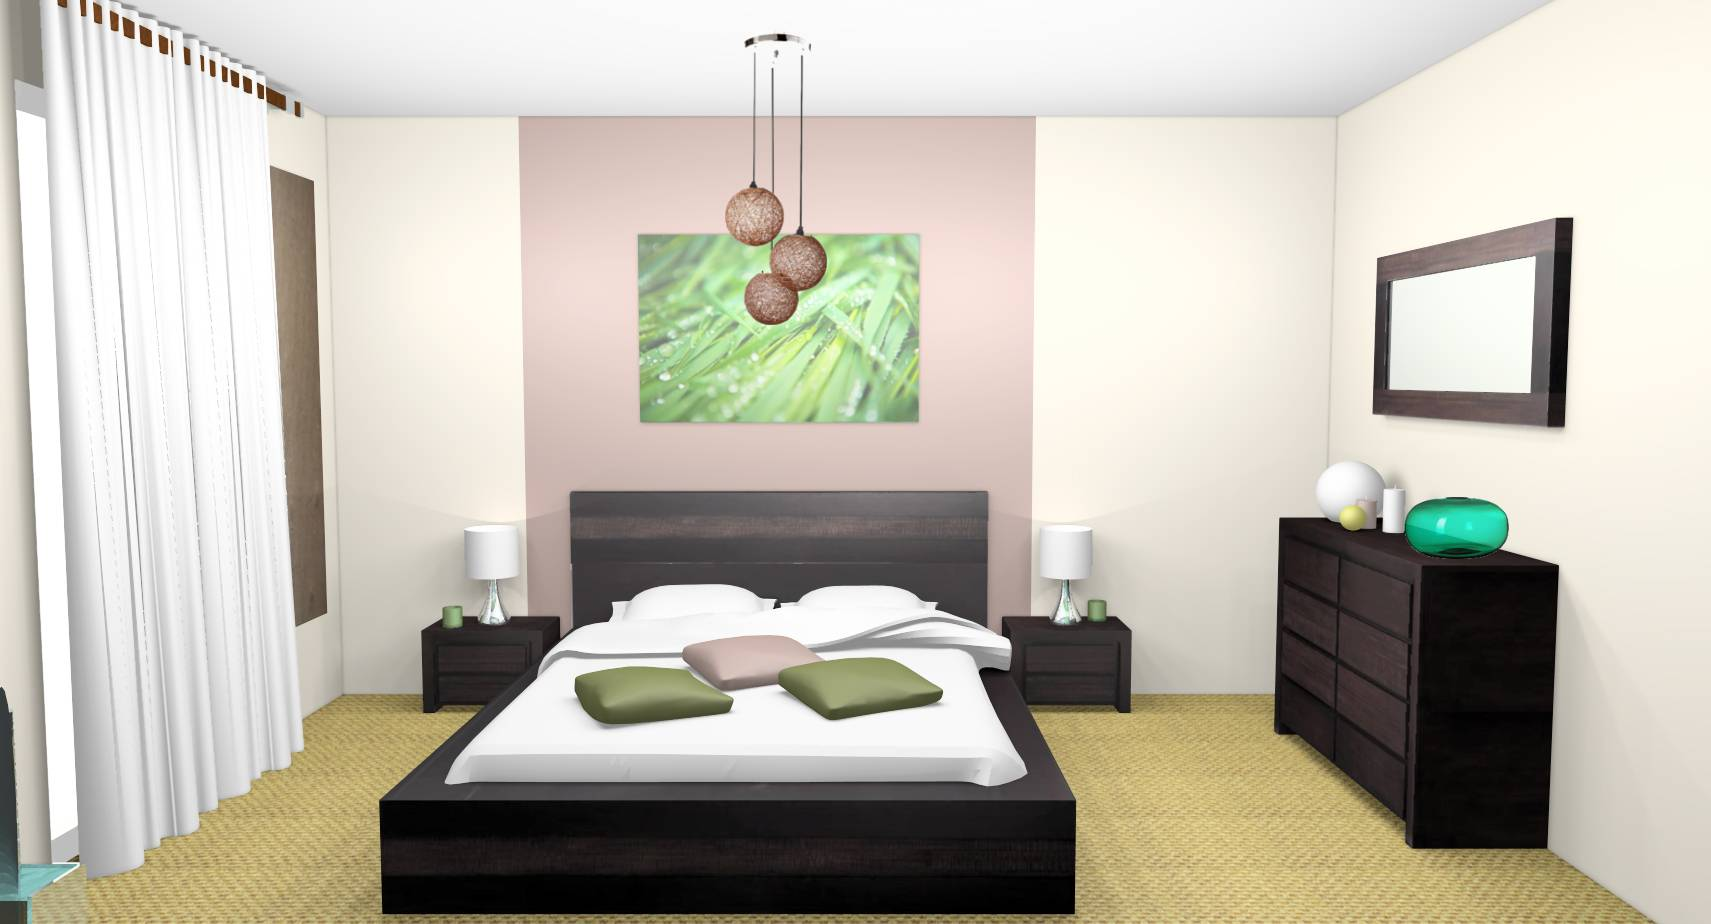 D co chambre zen adulte for Decoration de chambre a coucher pour adulte